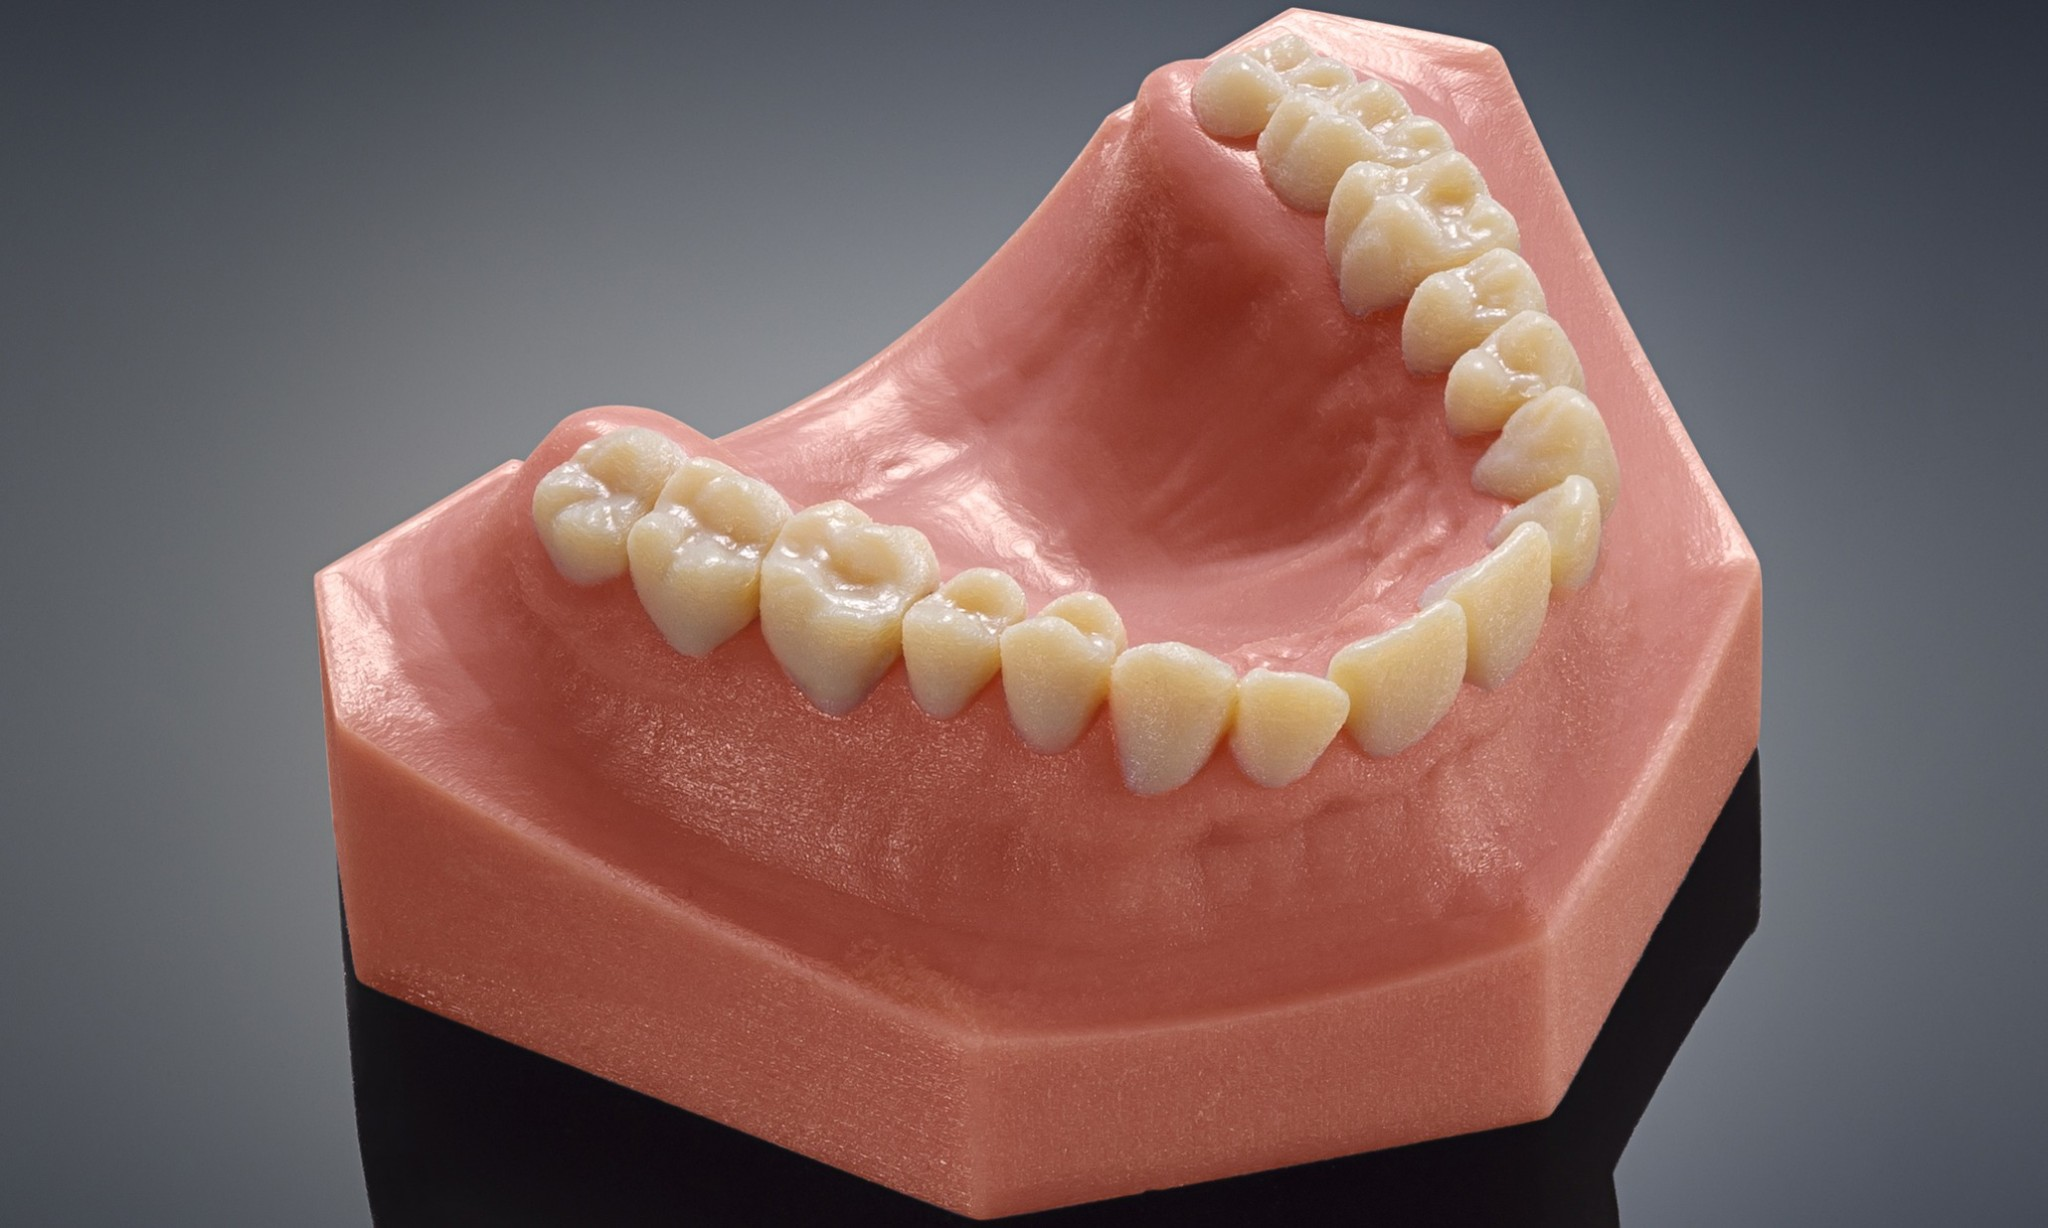 The latest advance in 3D printing: replacement teeth